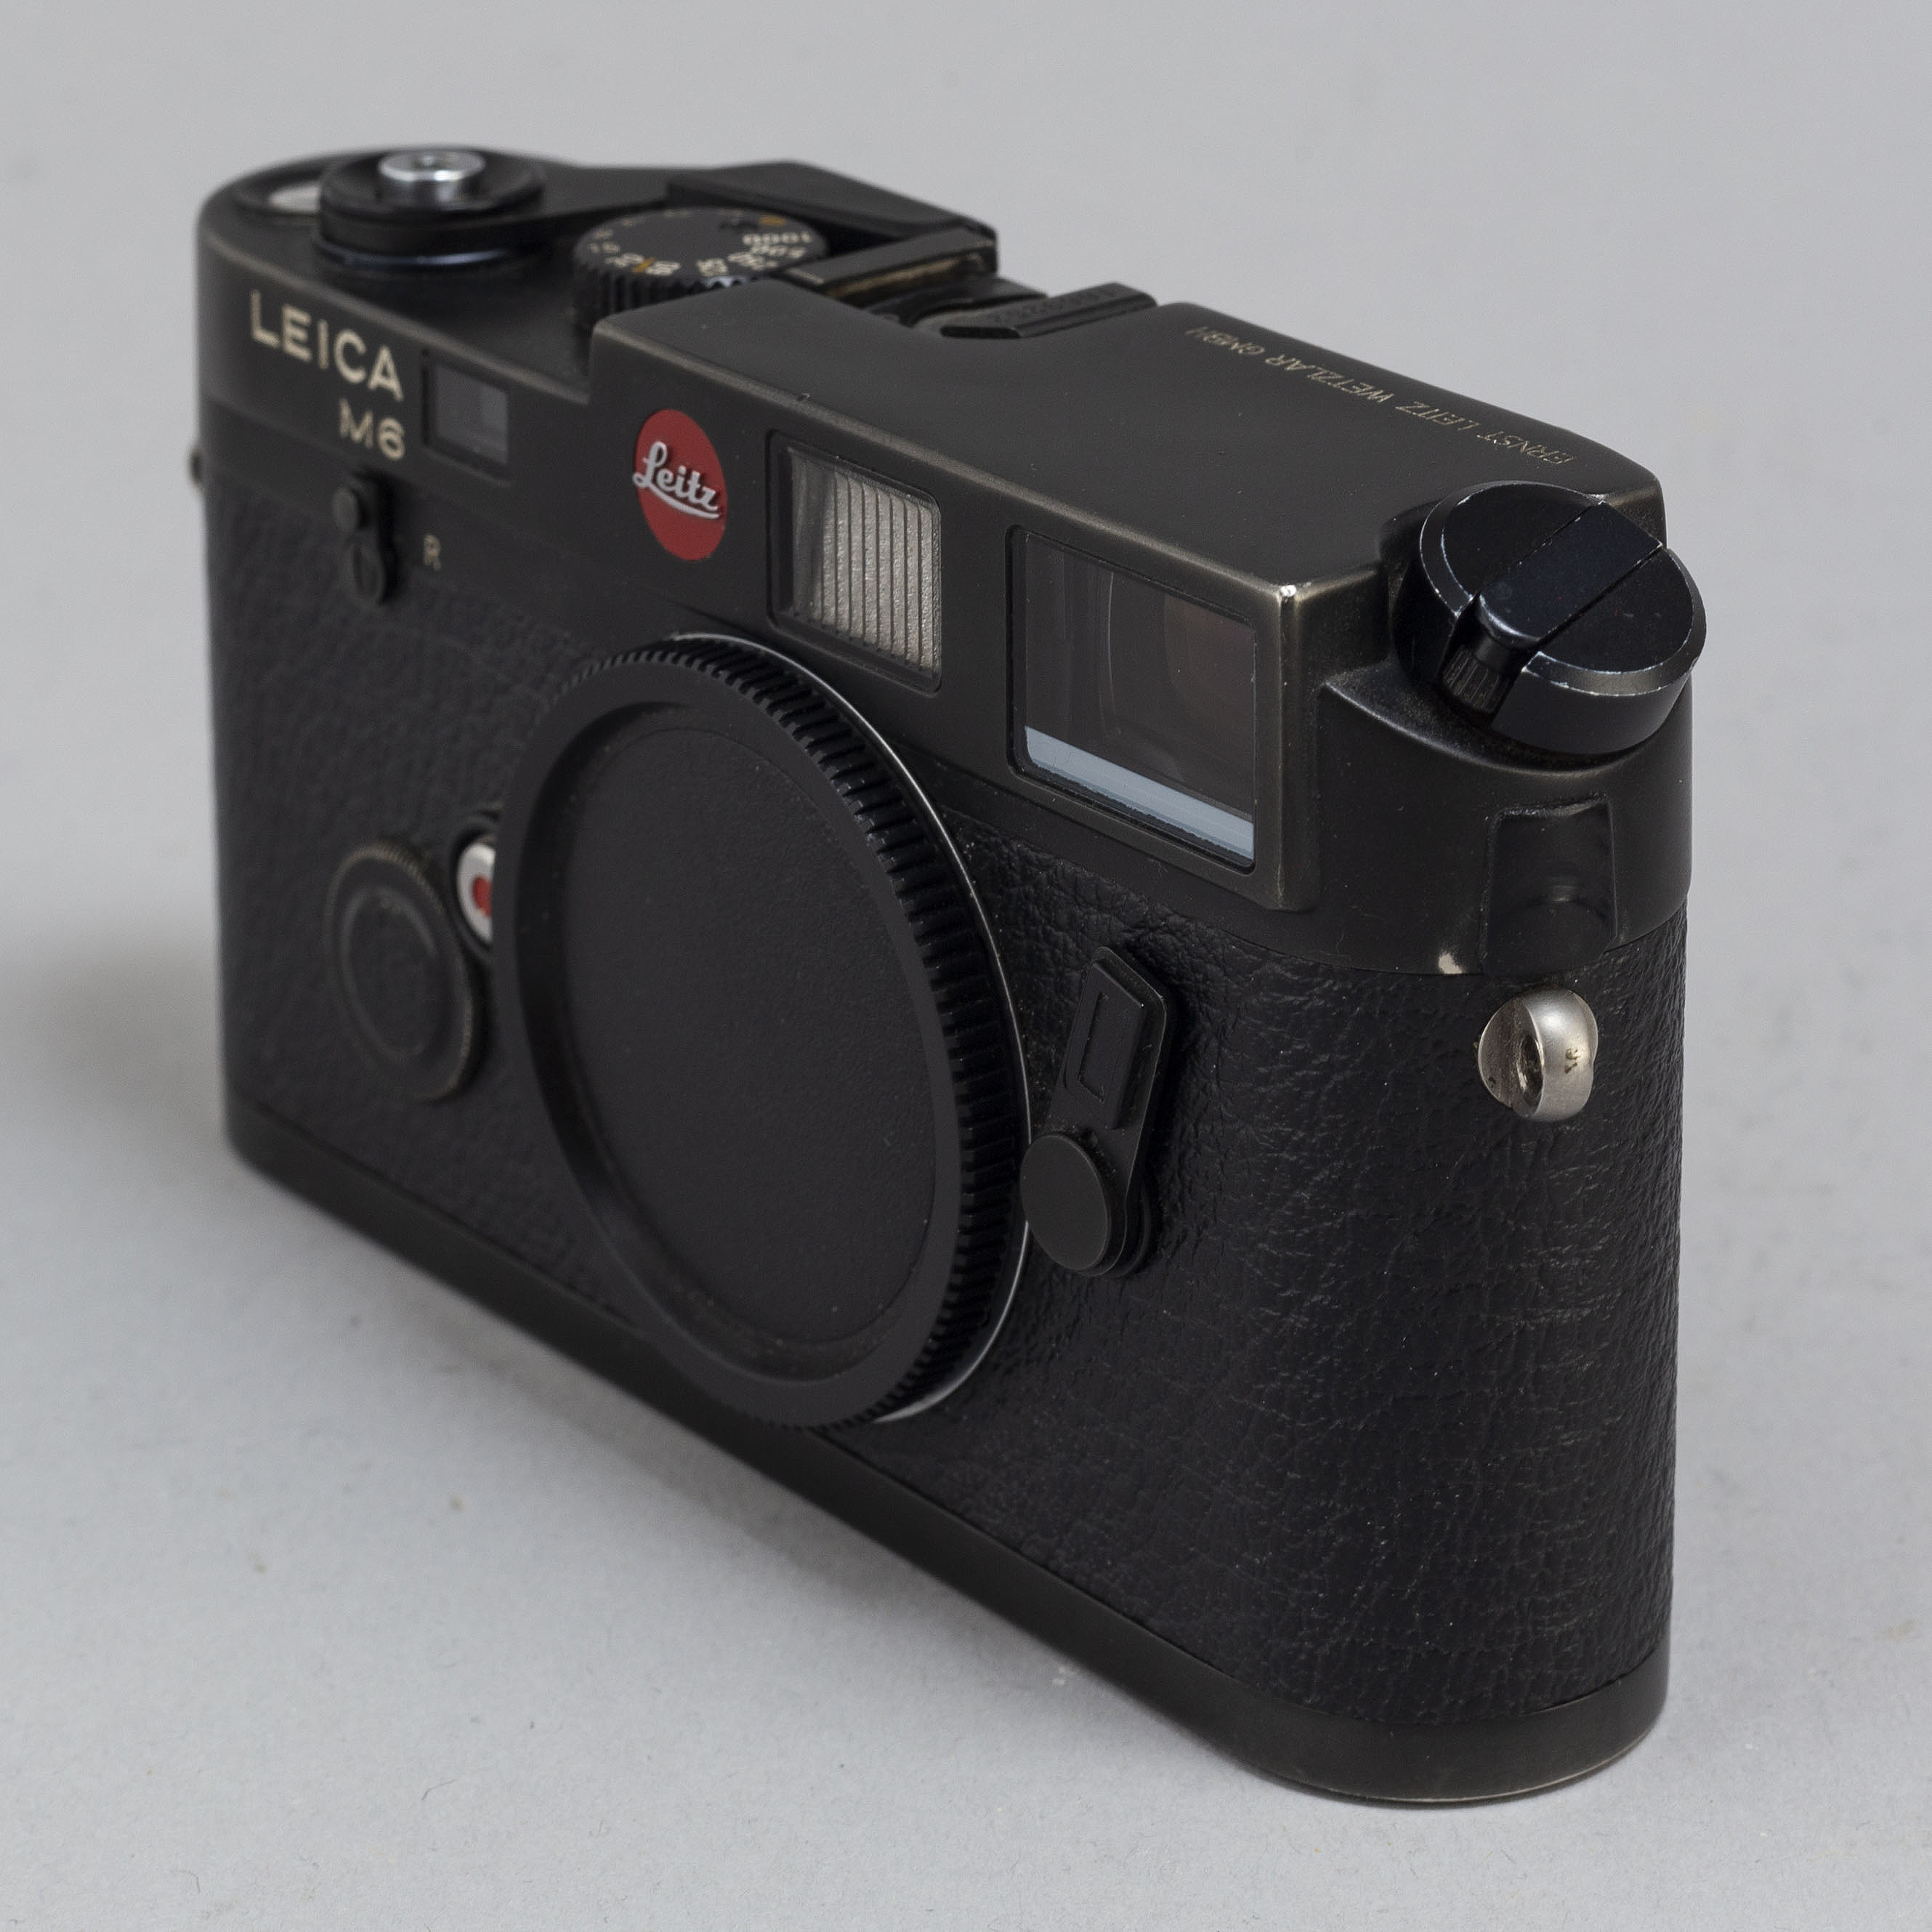 A Leica M6 body with a Summilux 1:1 4/50  - Bukowskis